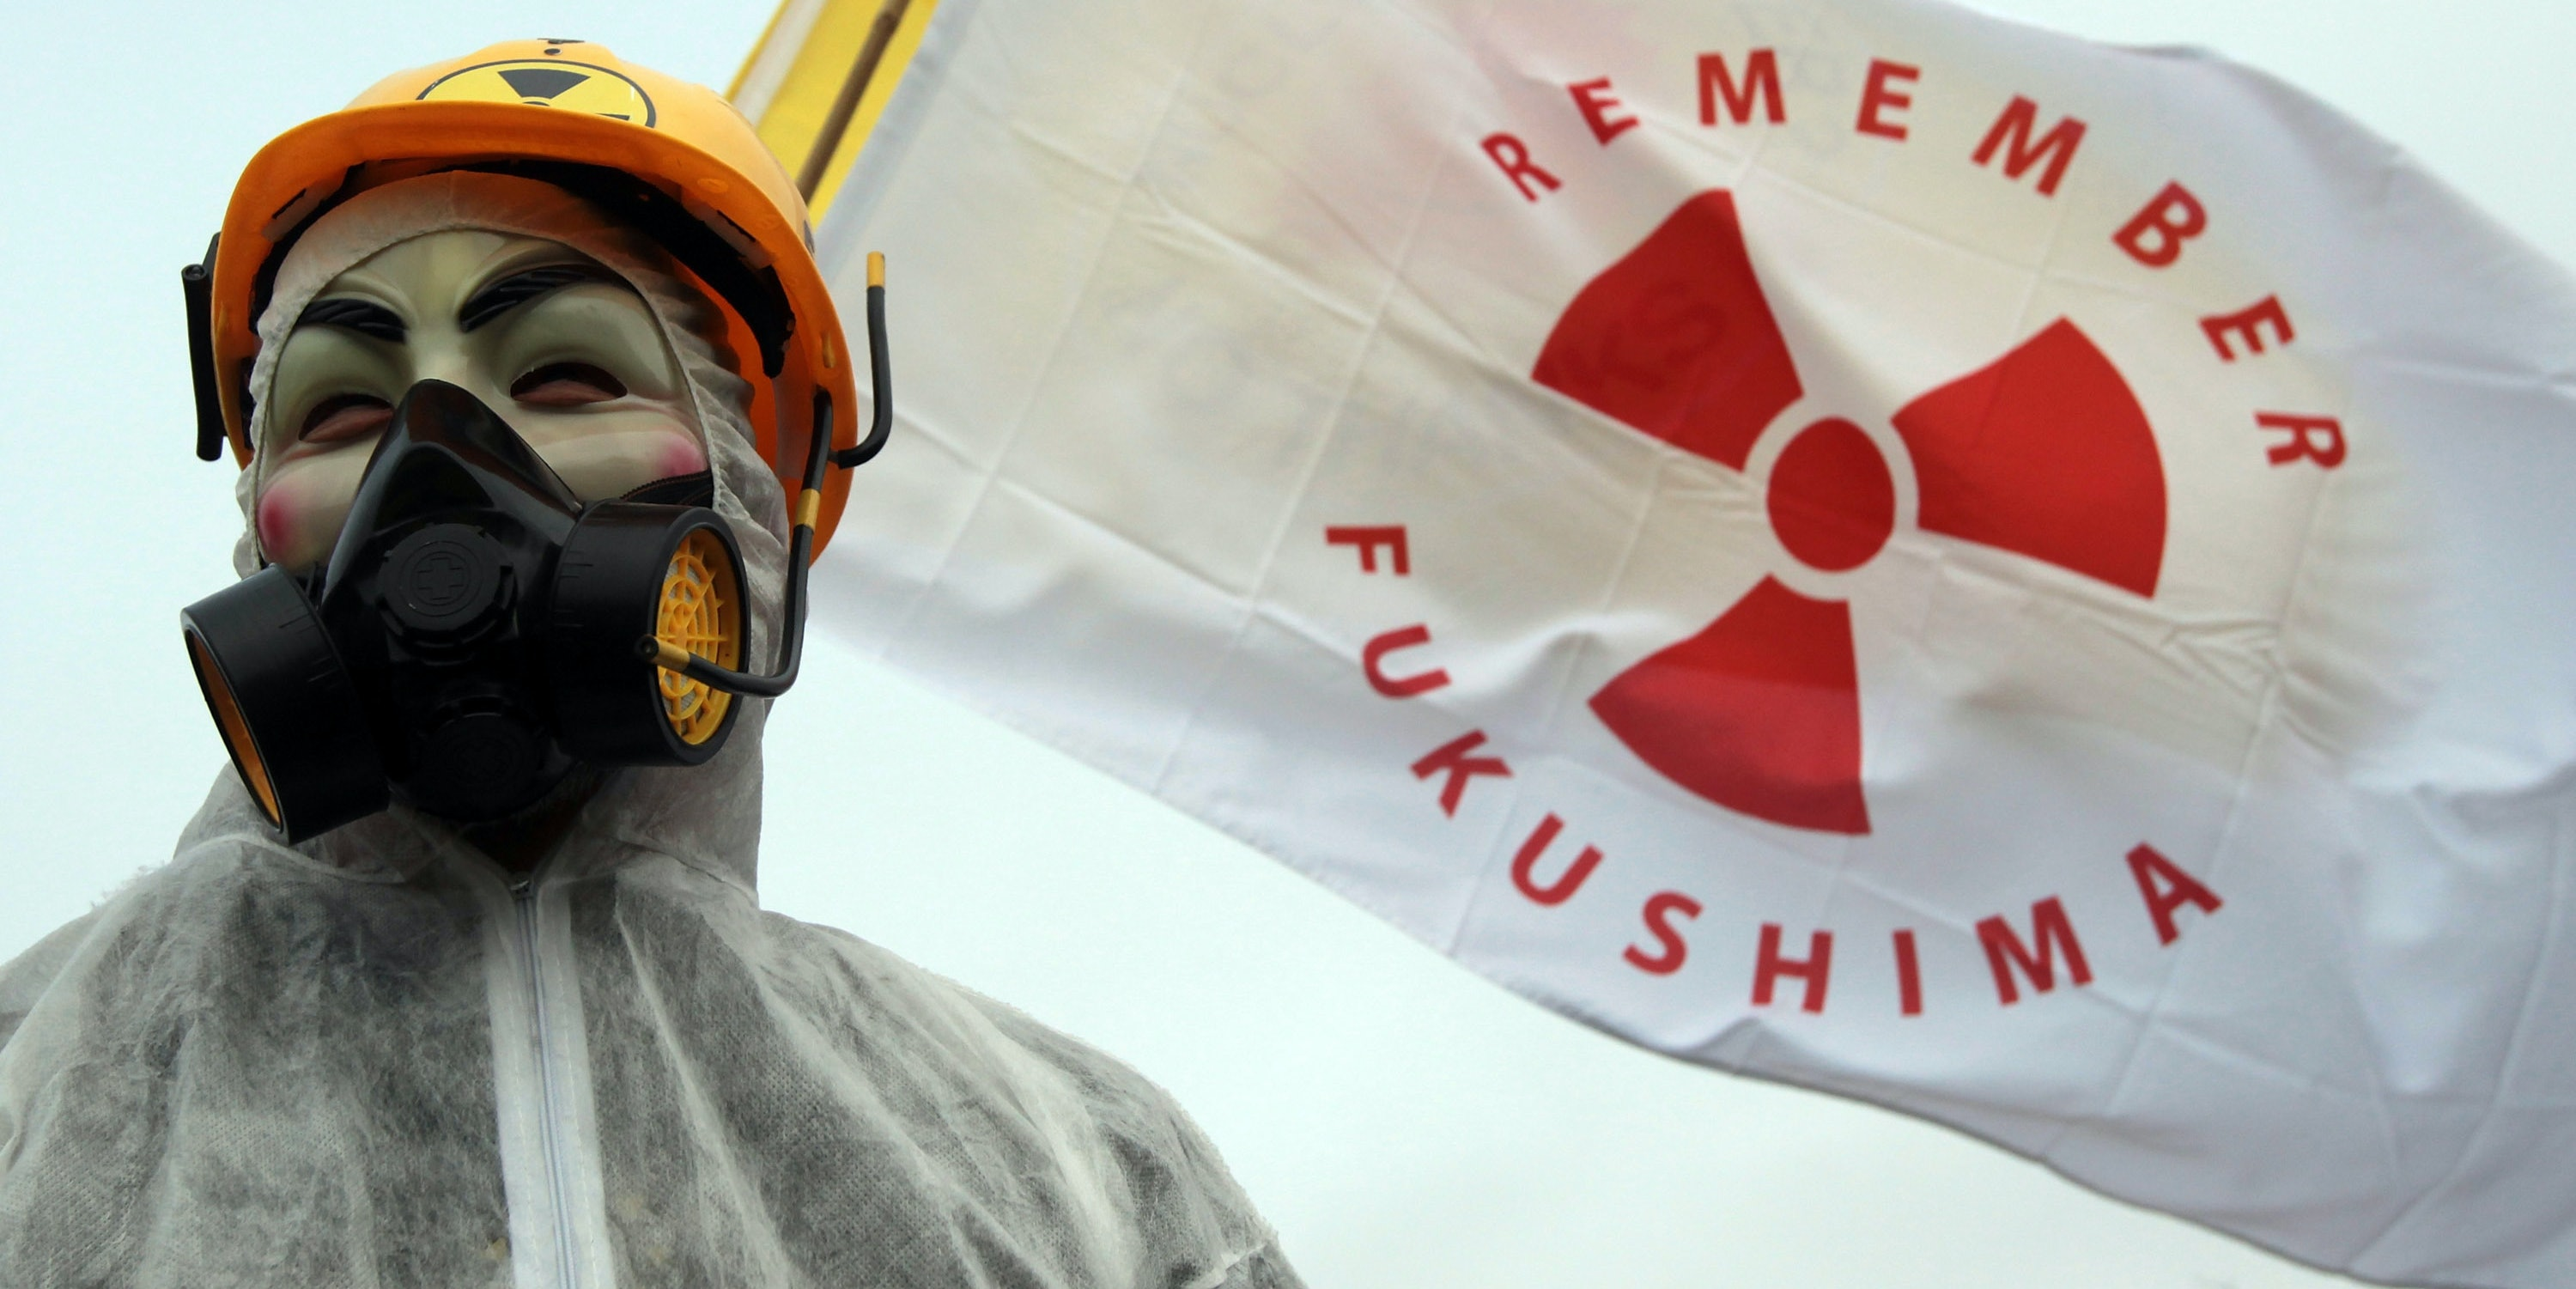 A masked protester stands in front of flags at the gates to the Hinkley Point nuclear power station to mark the first anniversary of the Fukushima disaster in Japan on March 10, 2012 near Bridgwater, England.